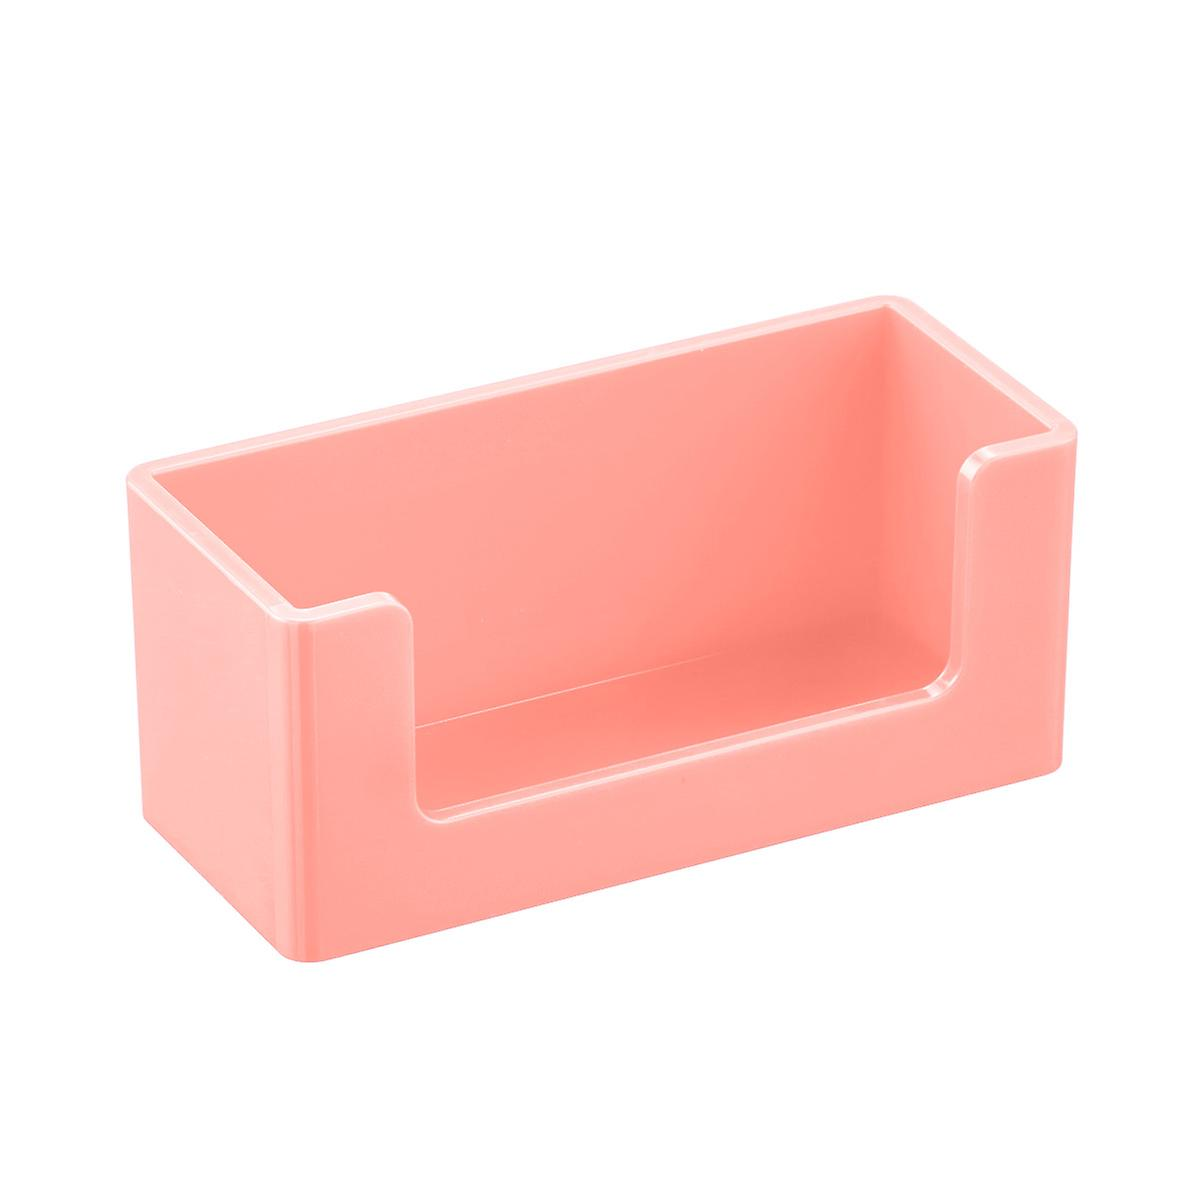 Blush Poppin Business Card Holder | The Container Store